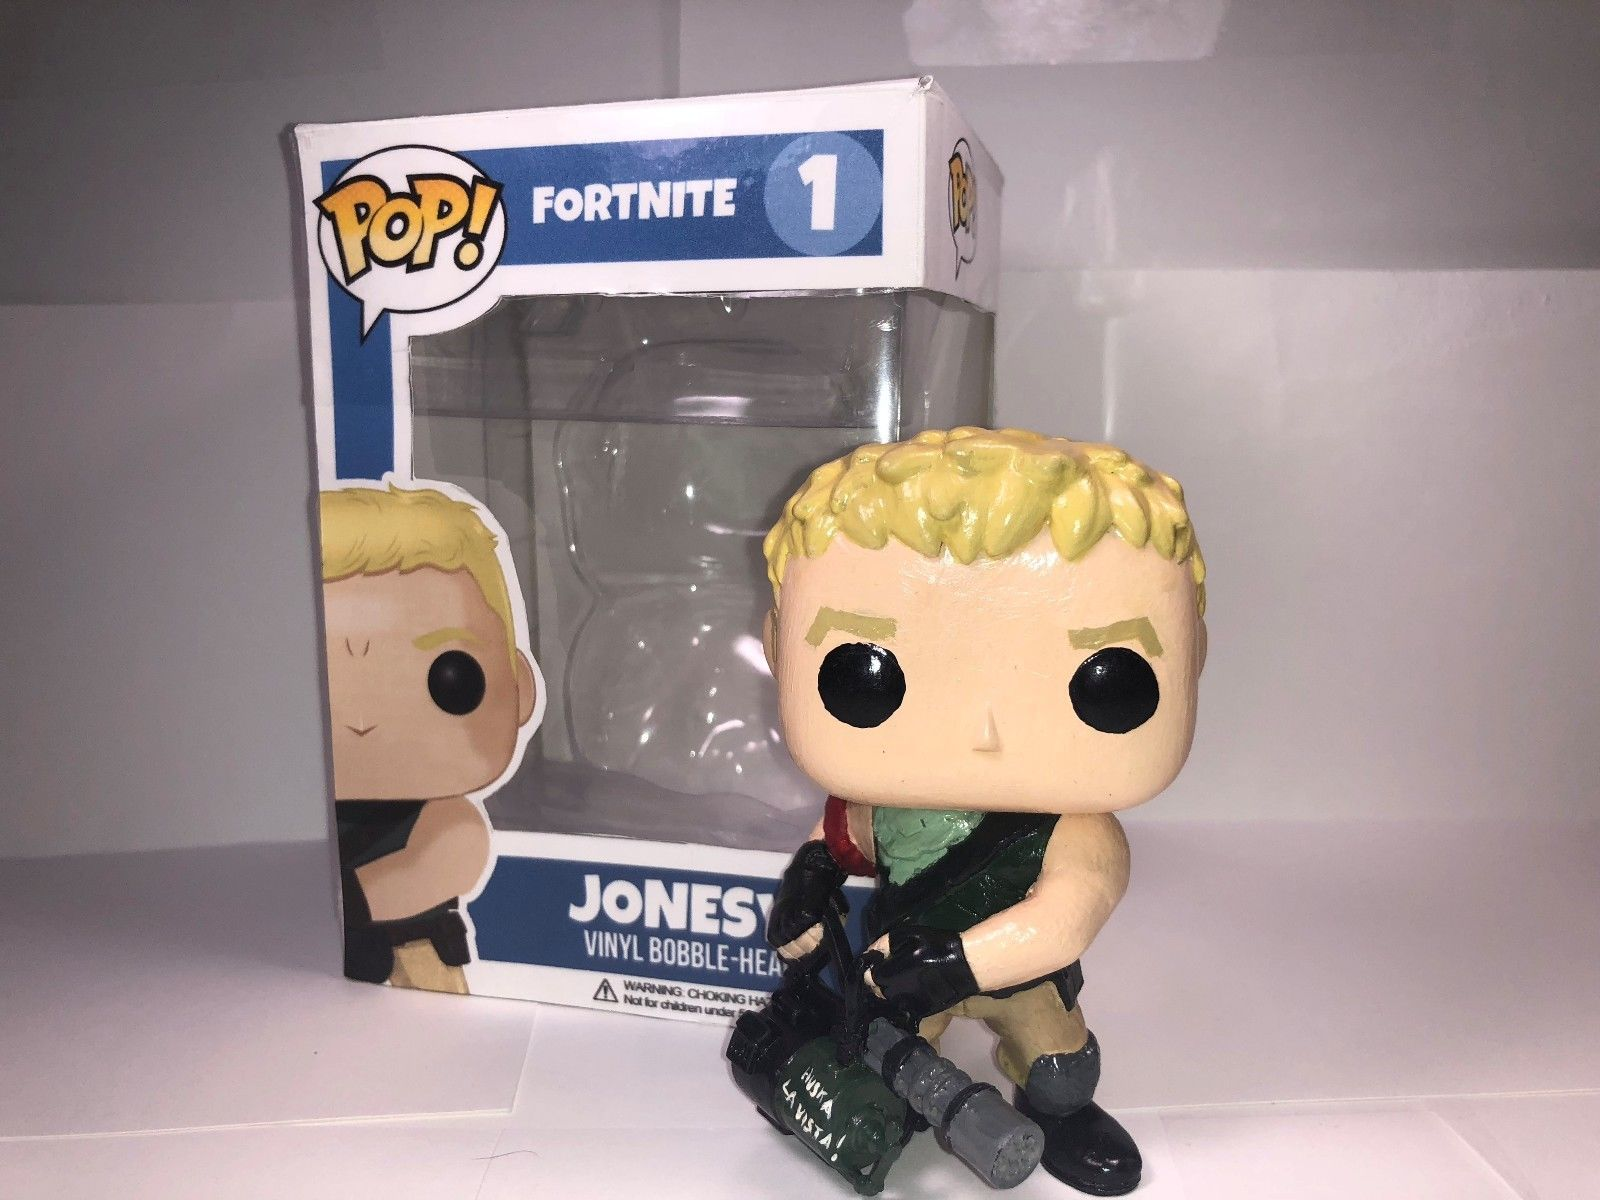 Fortnite Jonesy Custom Pop Figure With Custom Box Custom Pop